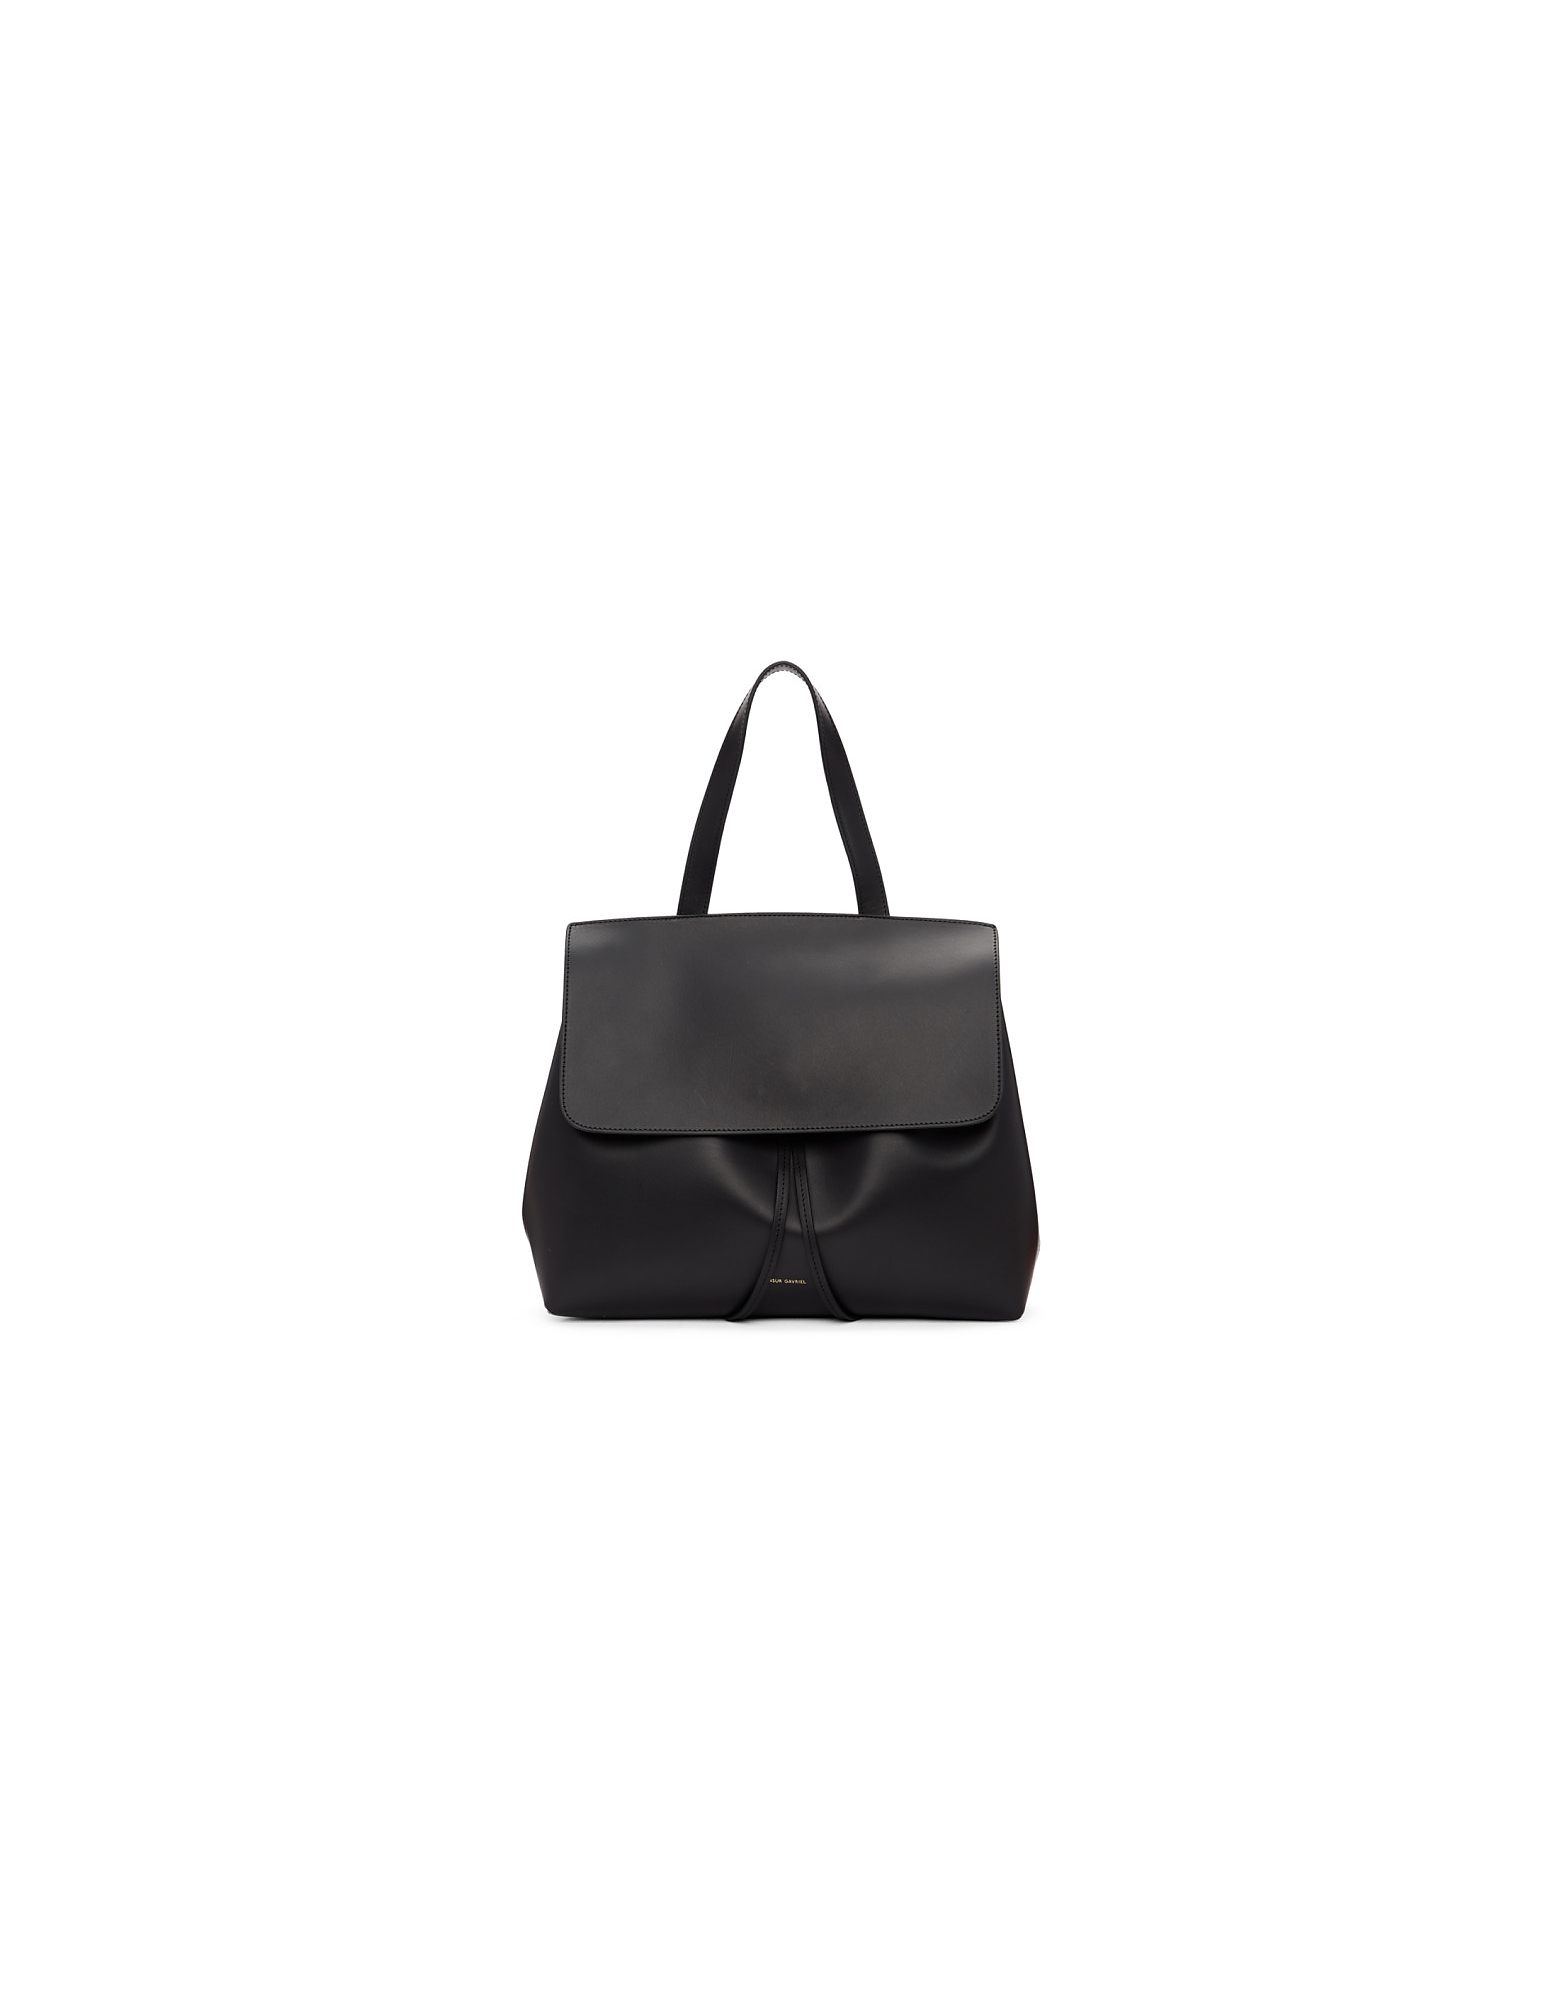 Mansur Gavriel Designer Handbags, Black Lady Bag